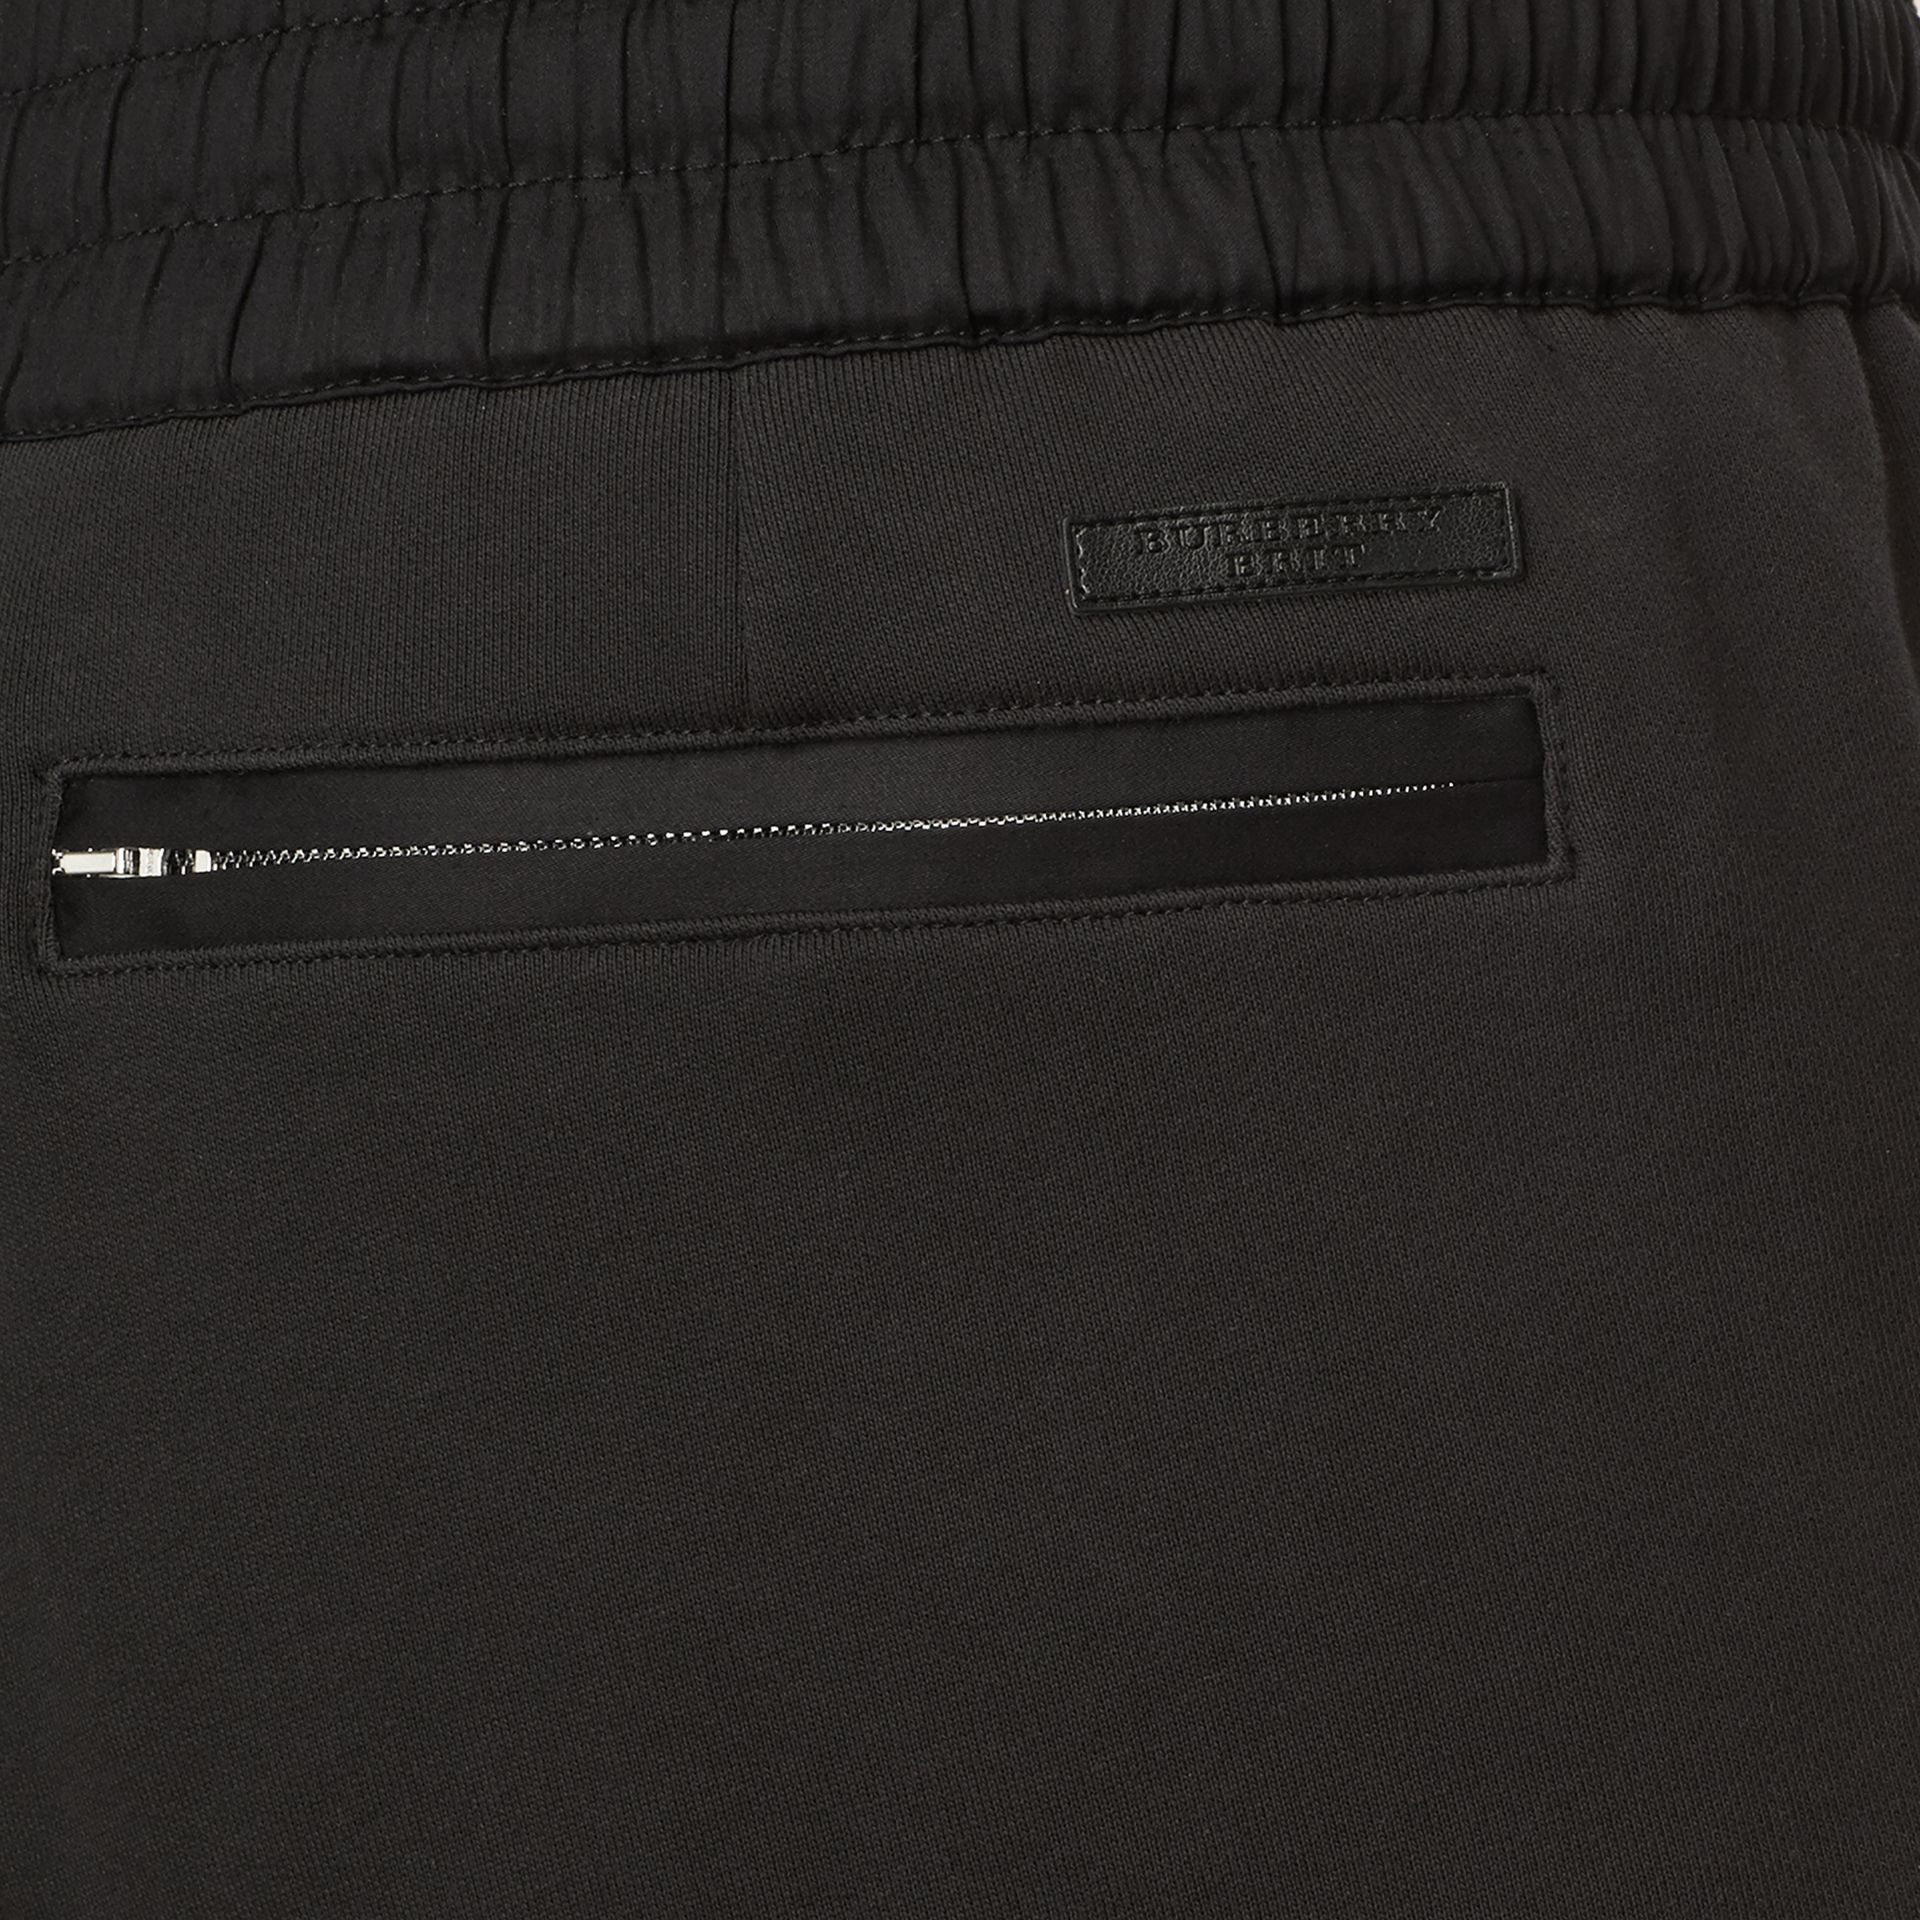 Cotton Sweatpants in Black - Men | Burberry - gallery image 2